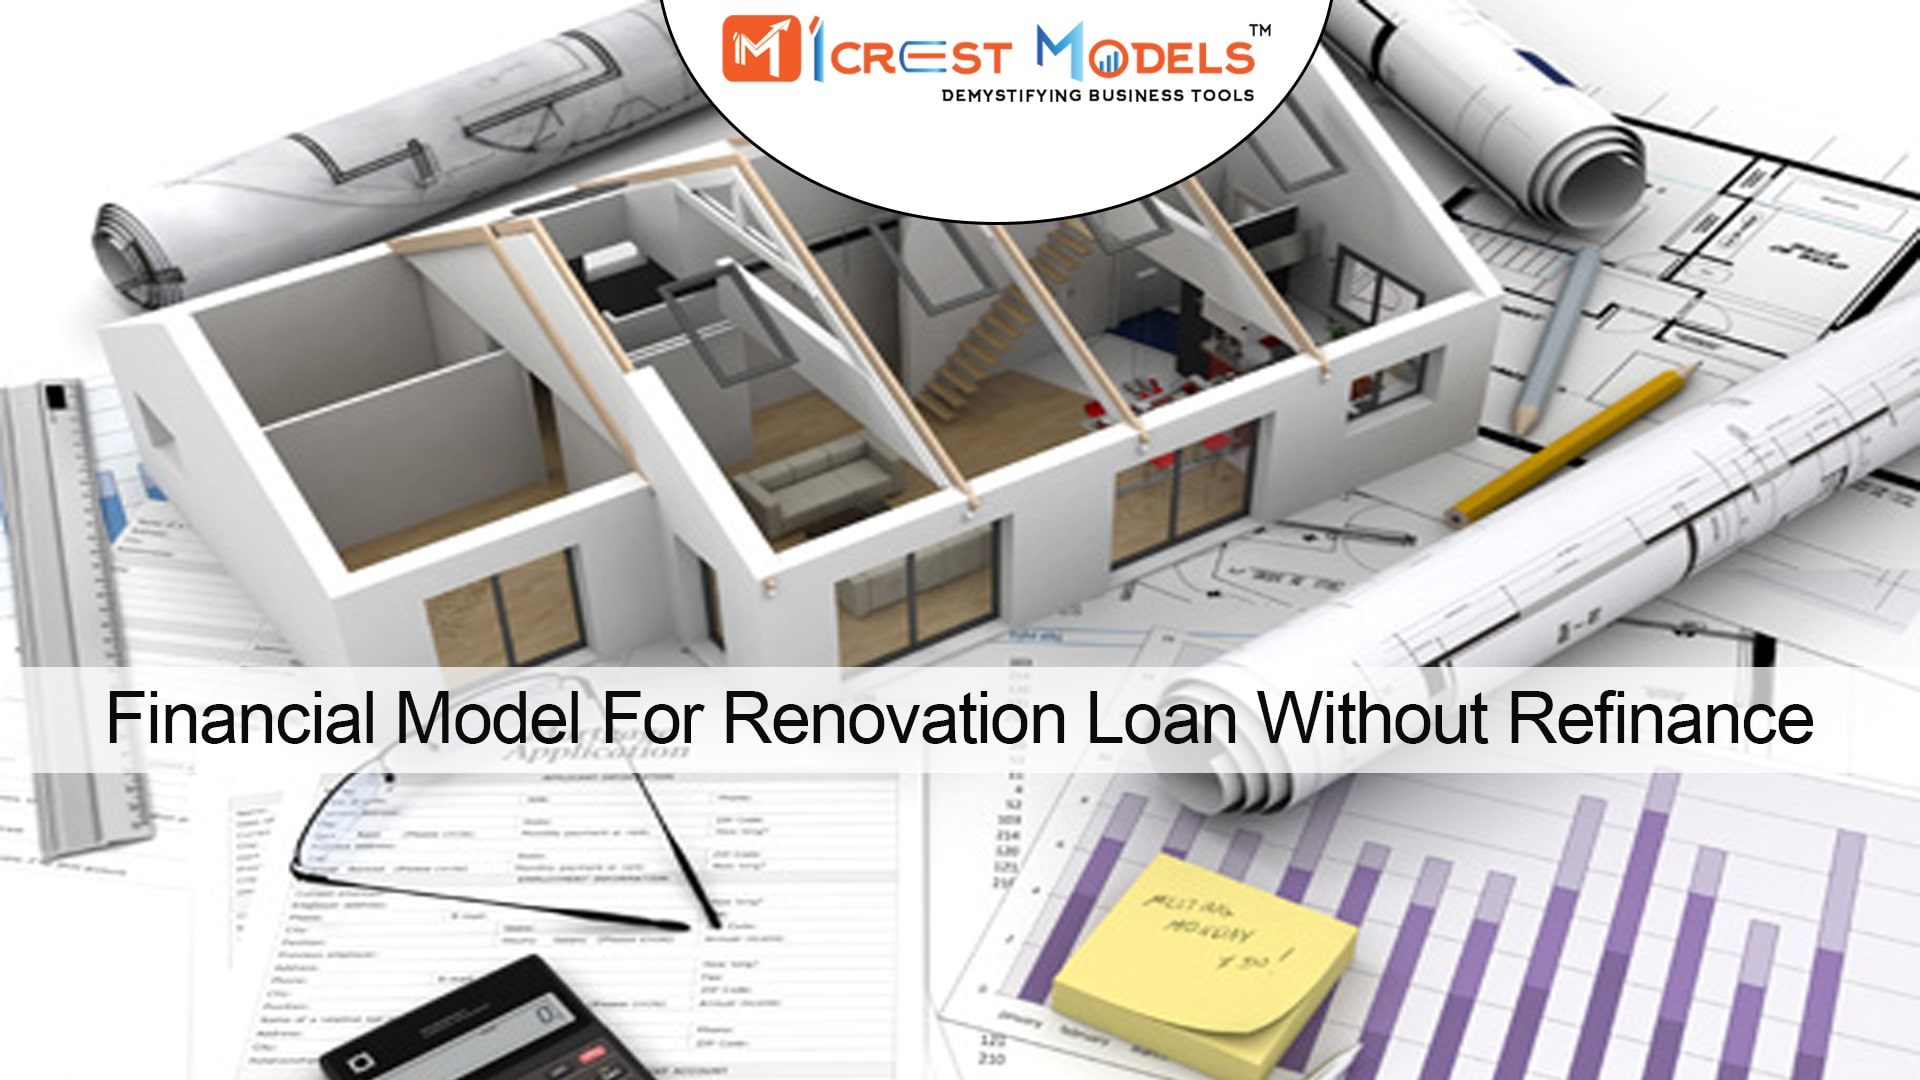 Financial Model For Renovation Loan Without Refinance